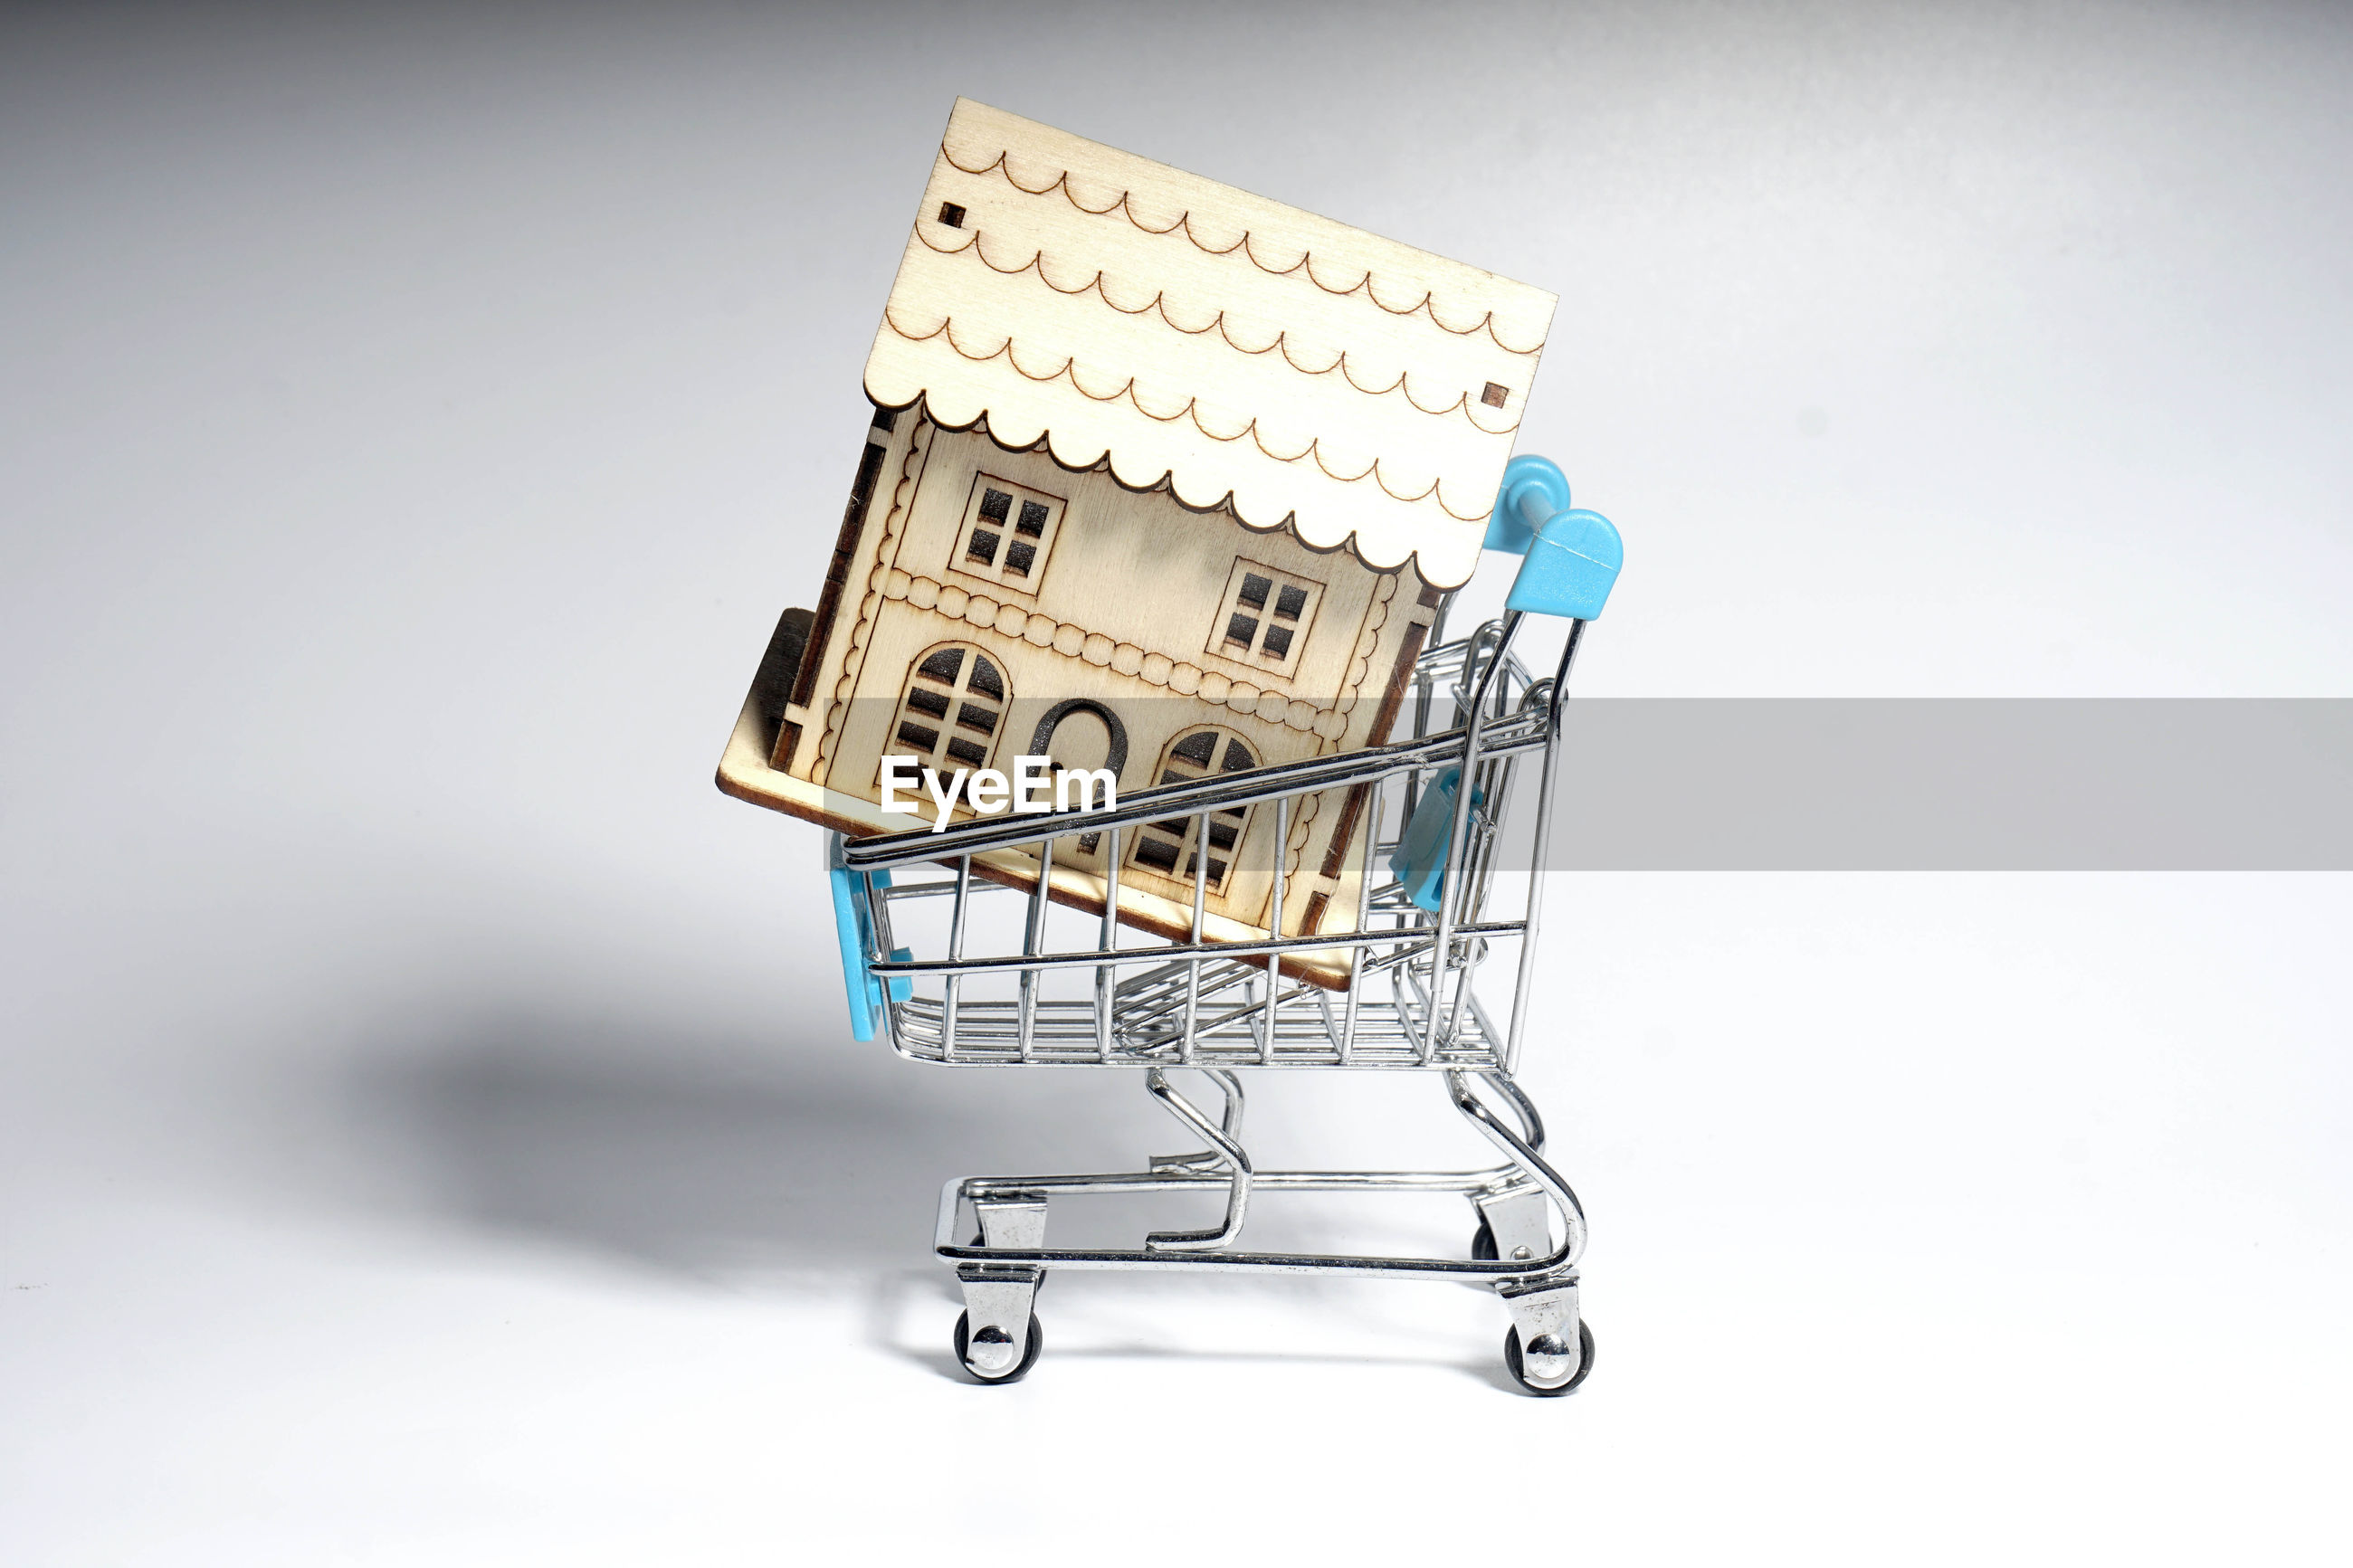 Close-up of model home in miniature shopping cart against white background